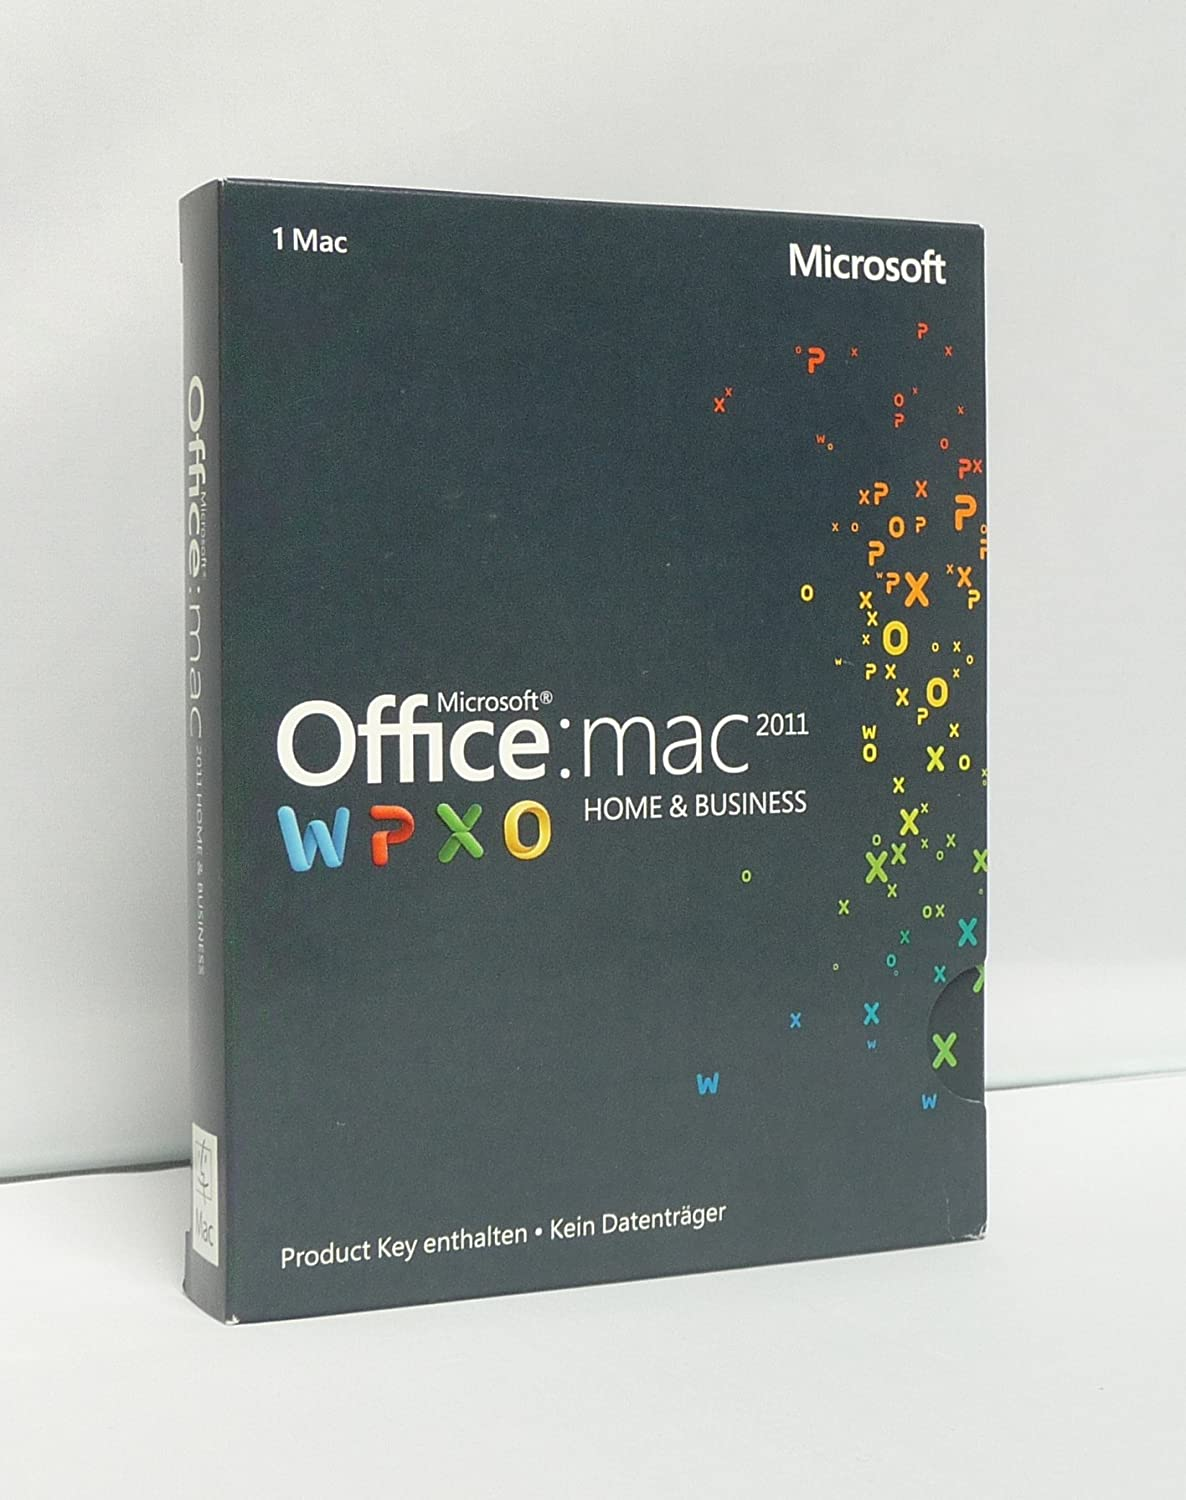 Microsoft Office Mac Home and Business 2011 - 1MAC (Product Key Card ...